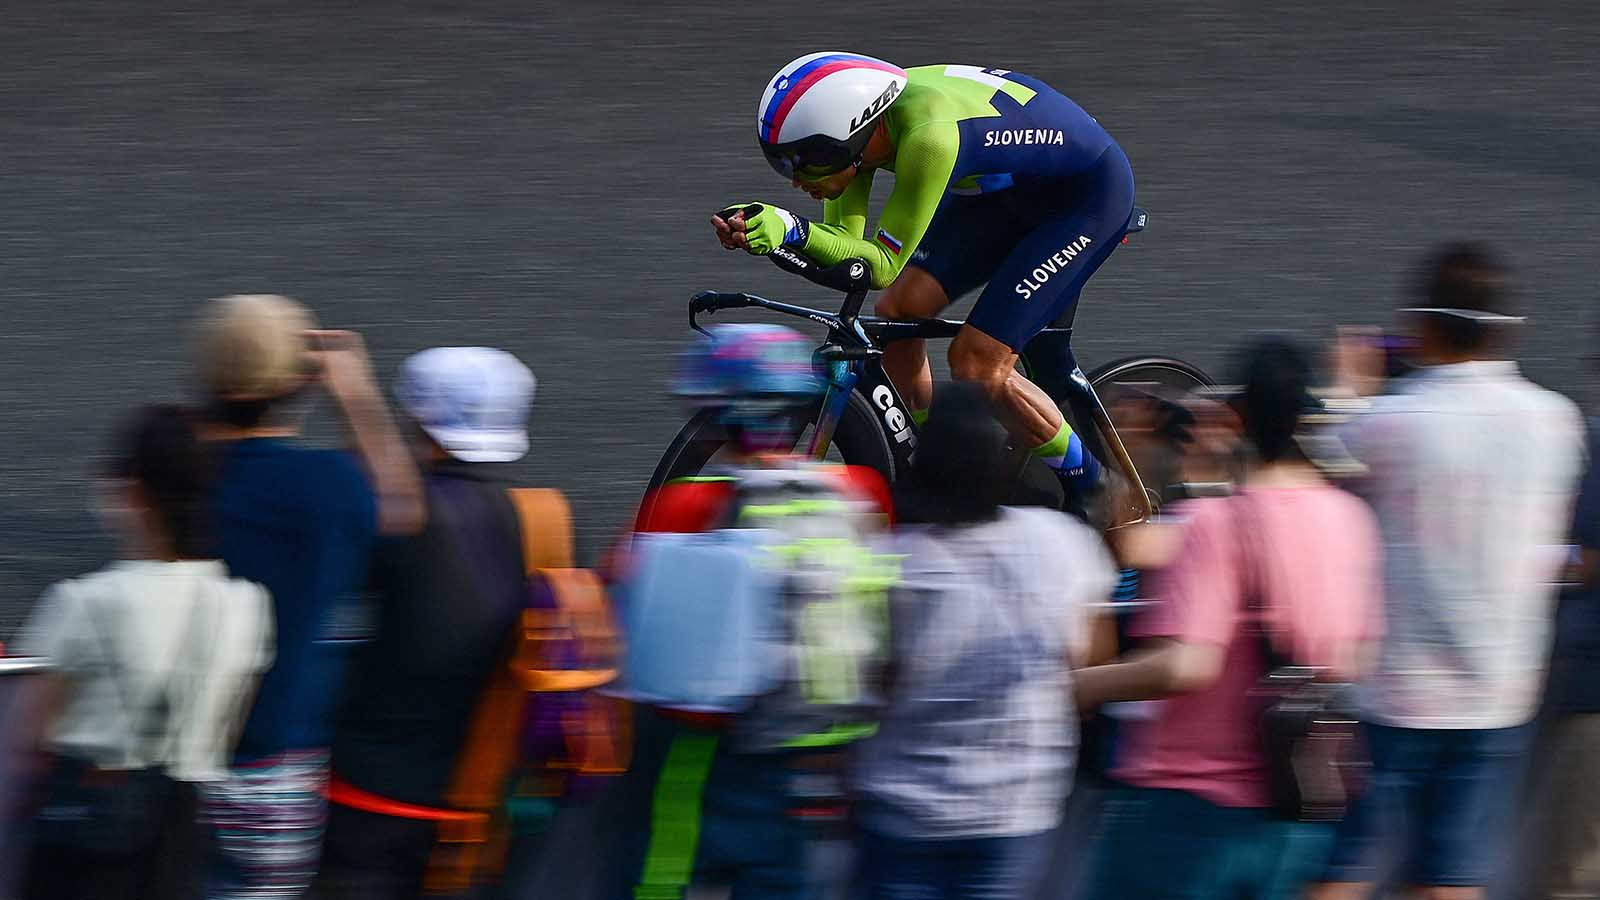 Primoz Roglic of Slovenia competes in the men's cycling road individual time trial in Oyama, Japan, on July 28.